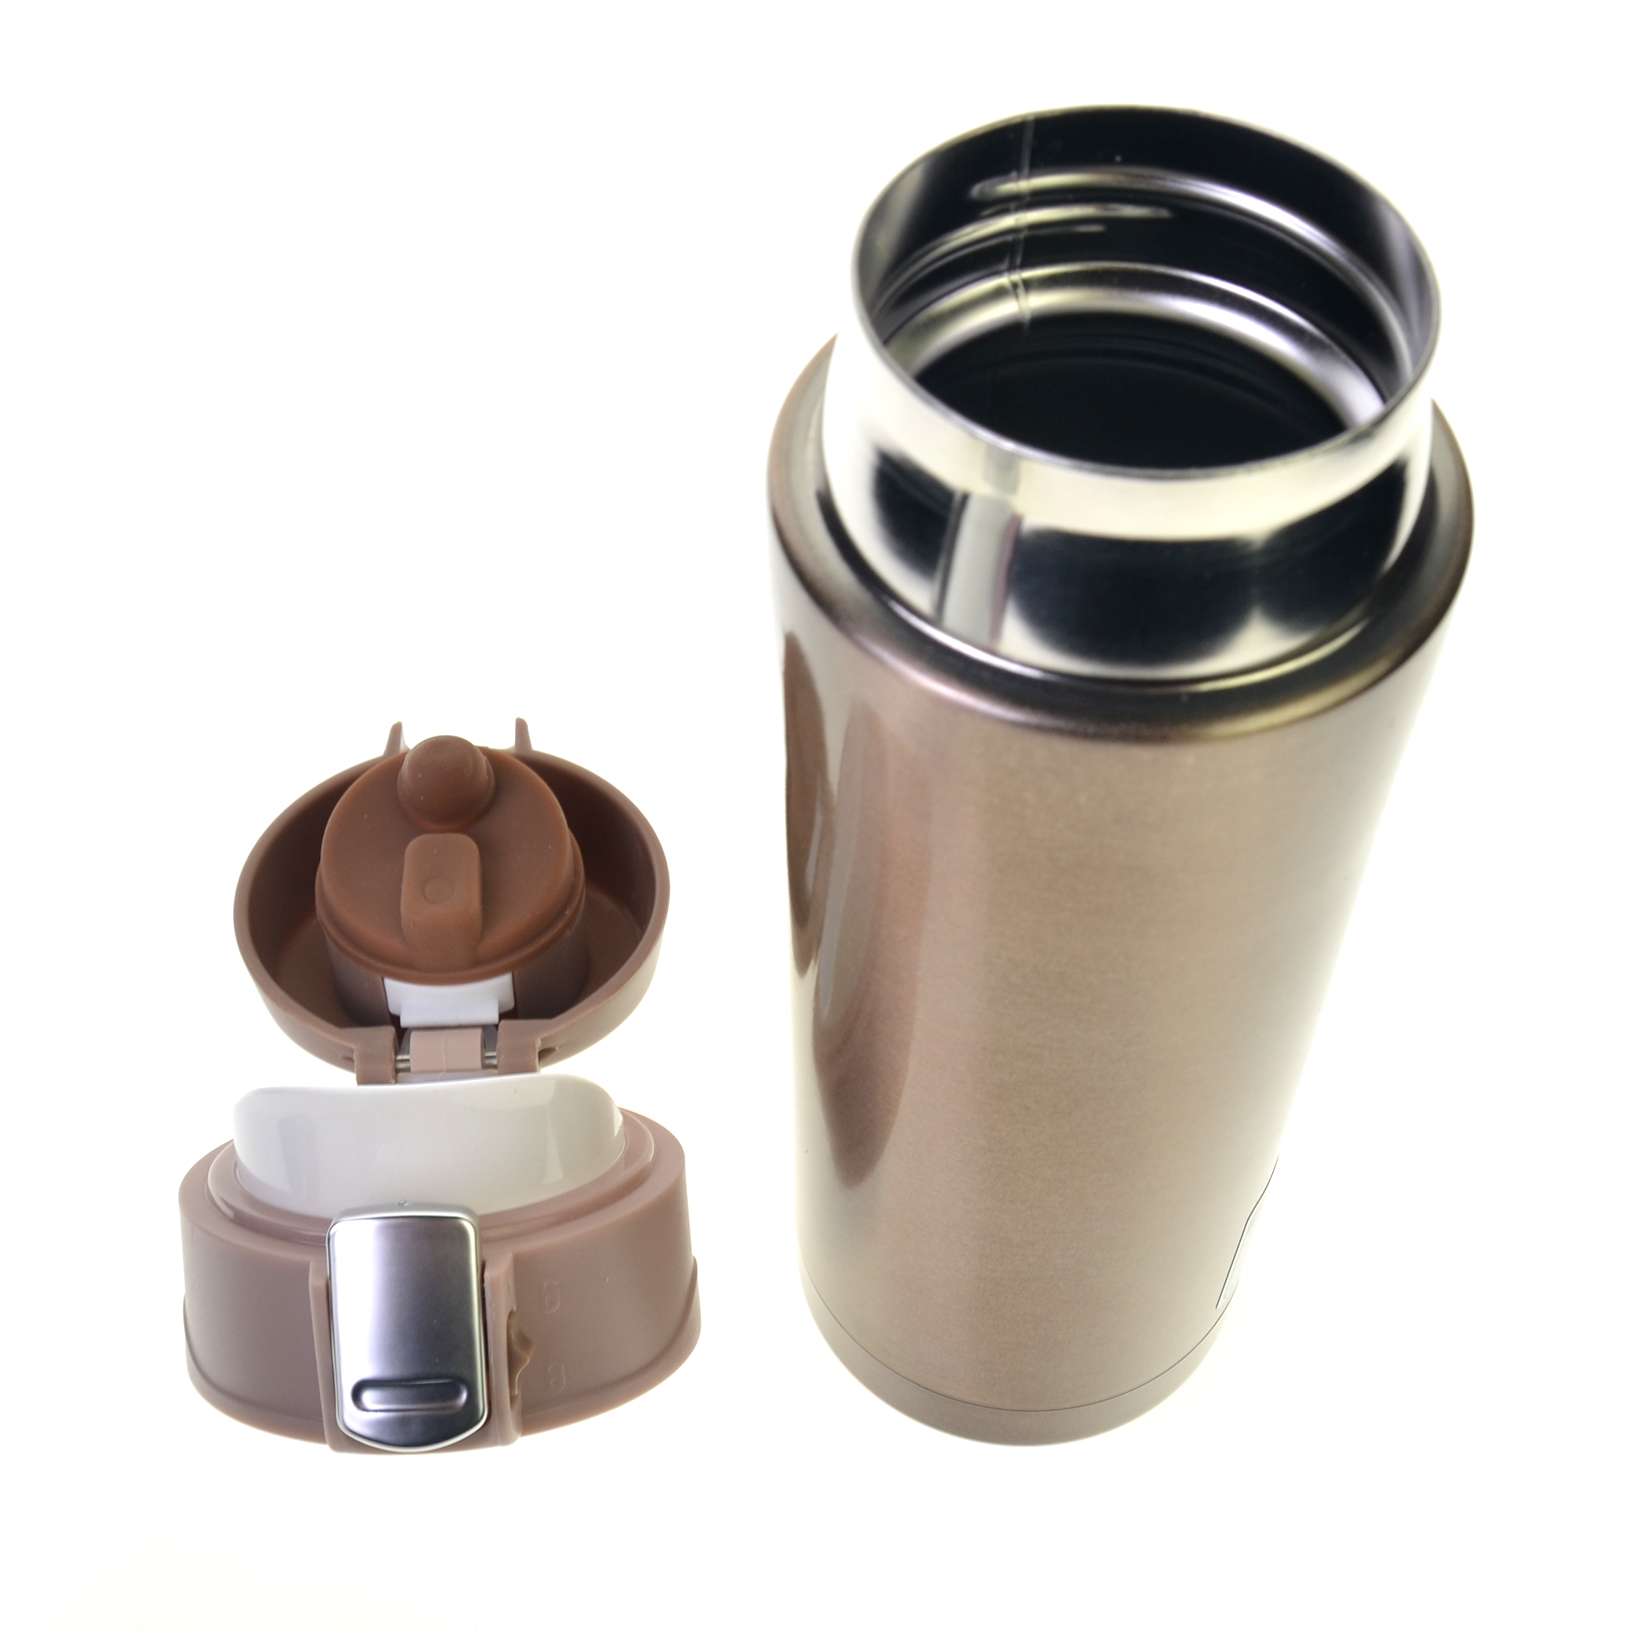 stainless steel mug thermos vacuum insulated travel tumbler coffee mug cup new ebay. Black Bedroom Furniture Sets. Home Design Ideas